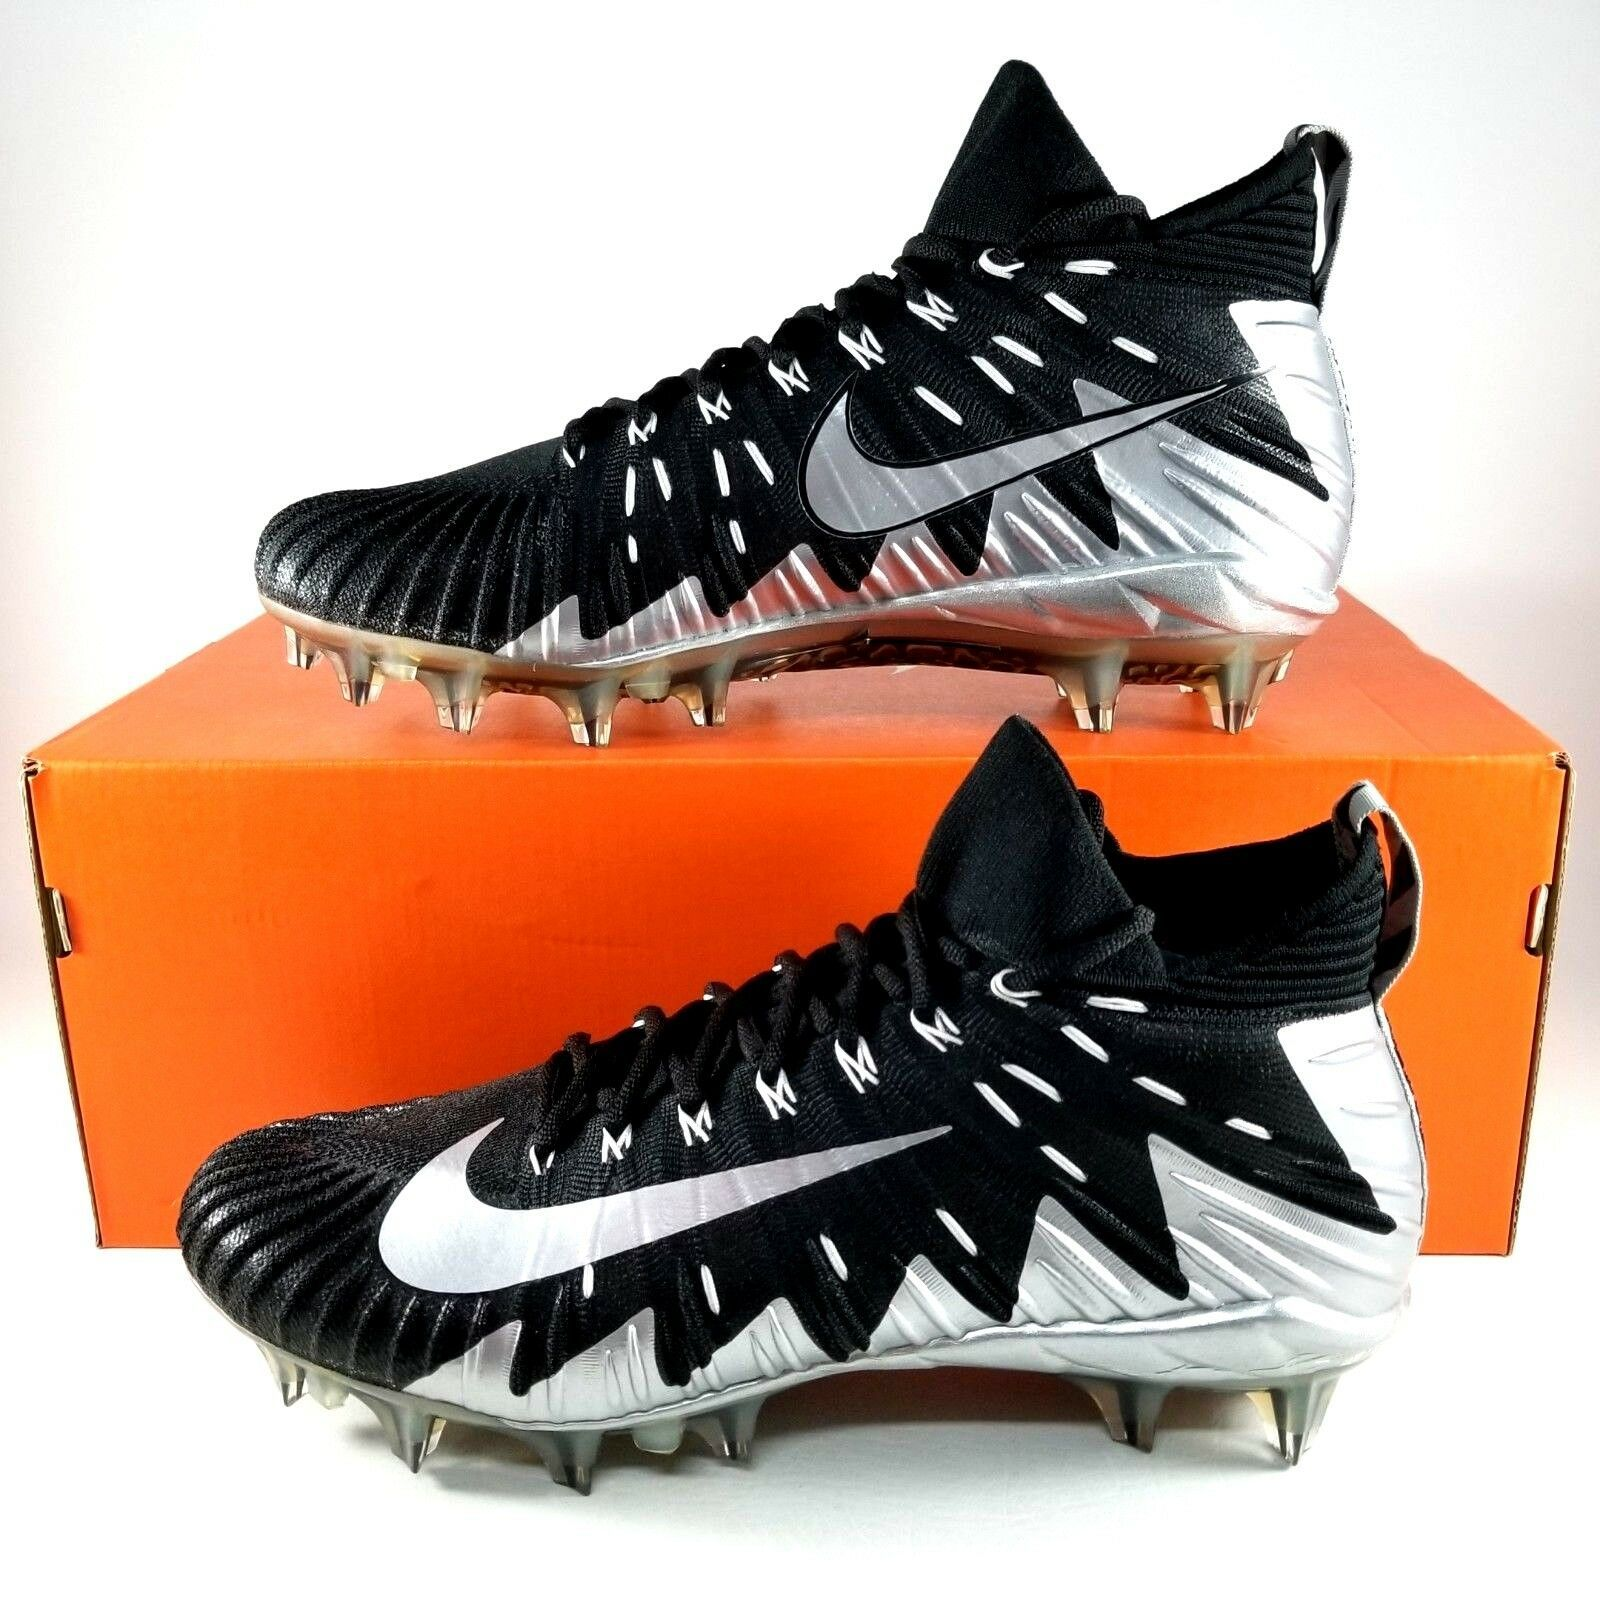 824e0e41070 Nike Alpha Menace Elite PF Football Cleats and 34 similar items. 57